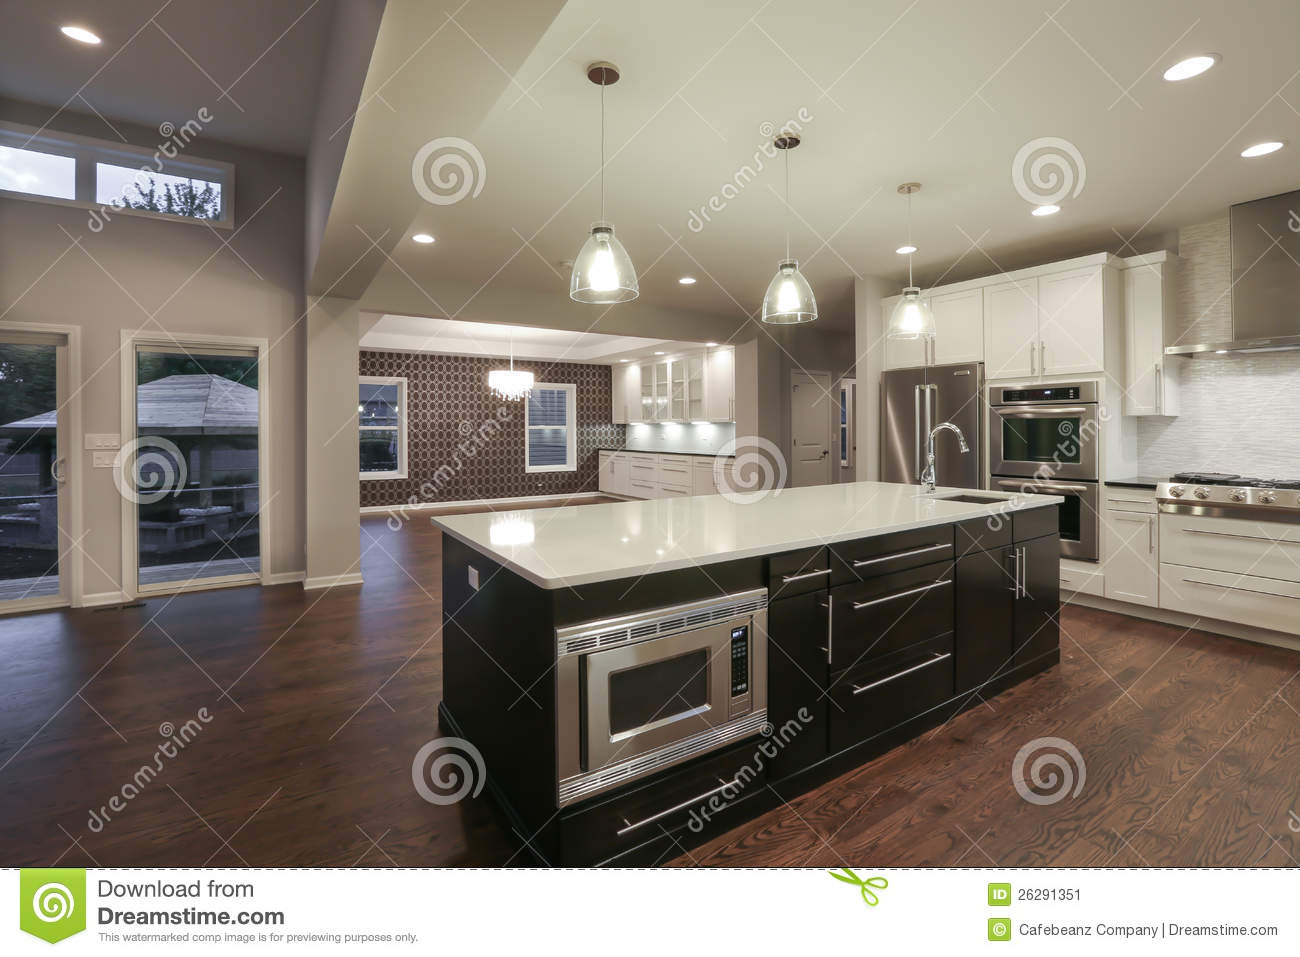 new home interior stock image image 26291351 sylvie meehan designs fort worth interior designer